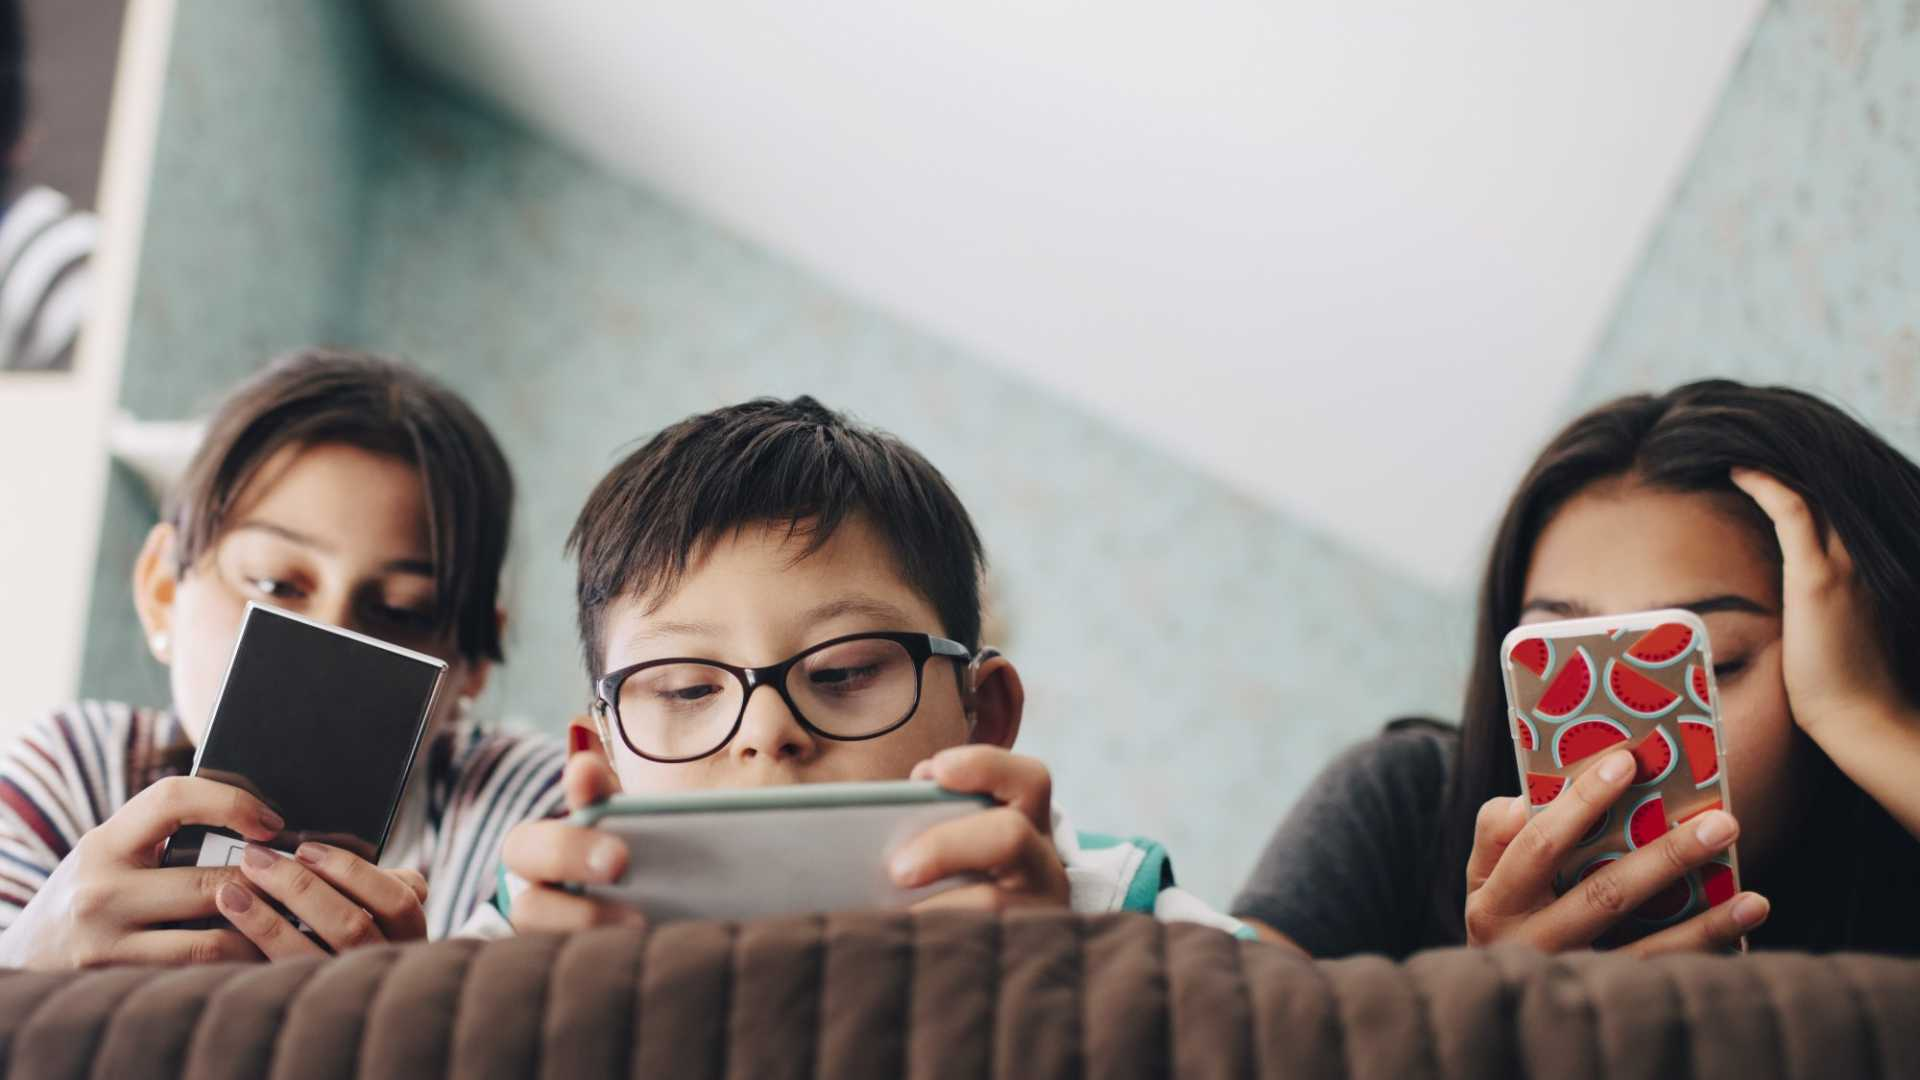 Cambridge Psychologist: Stop Worrying About Kids' Screen Time and Do This Instead